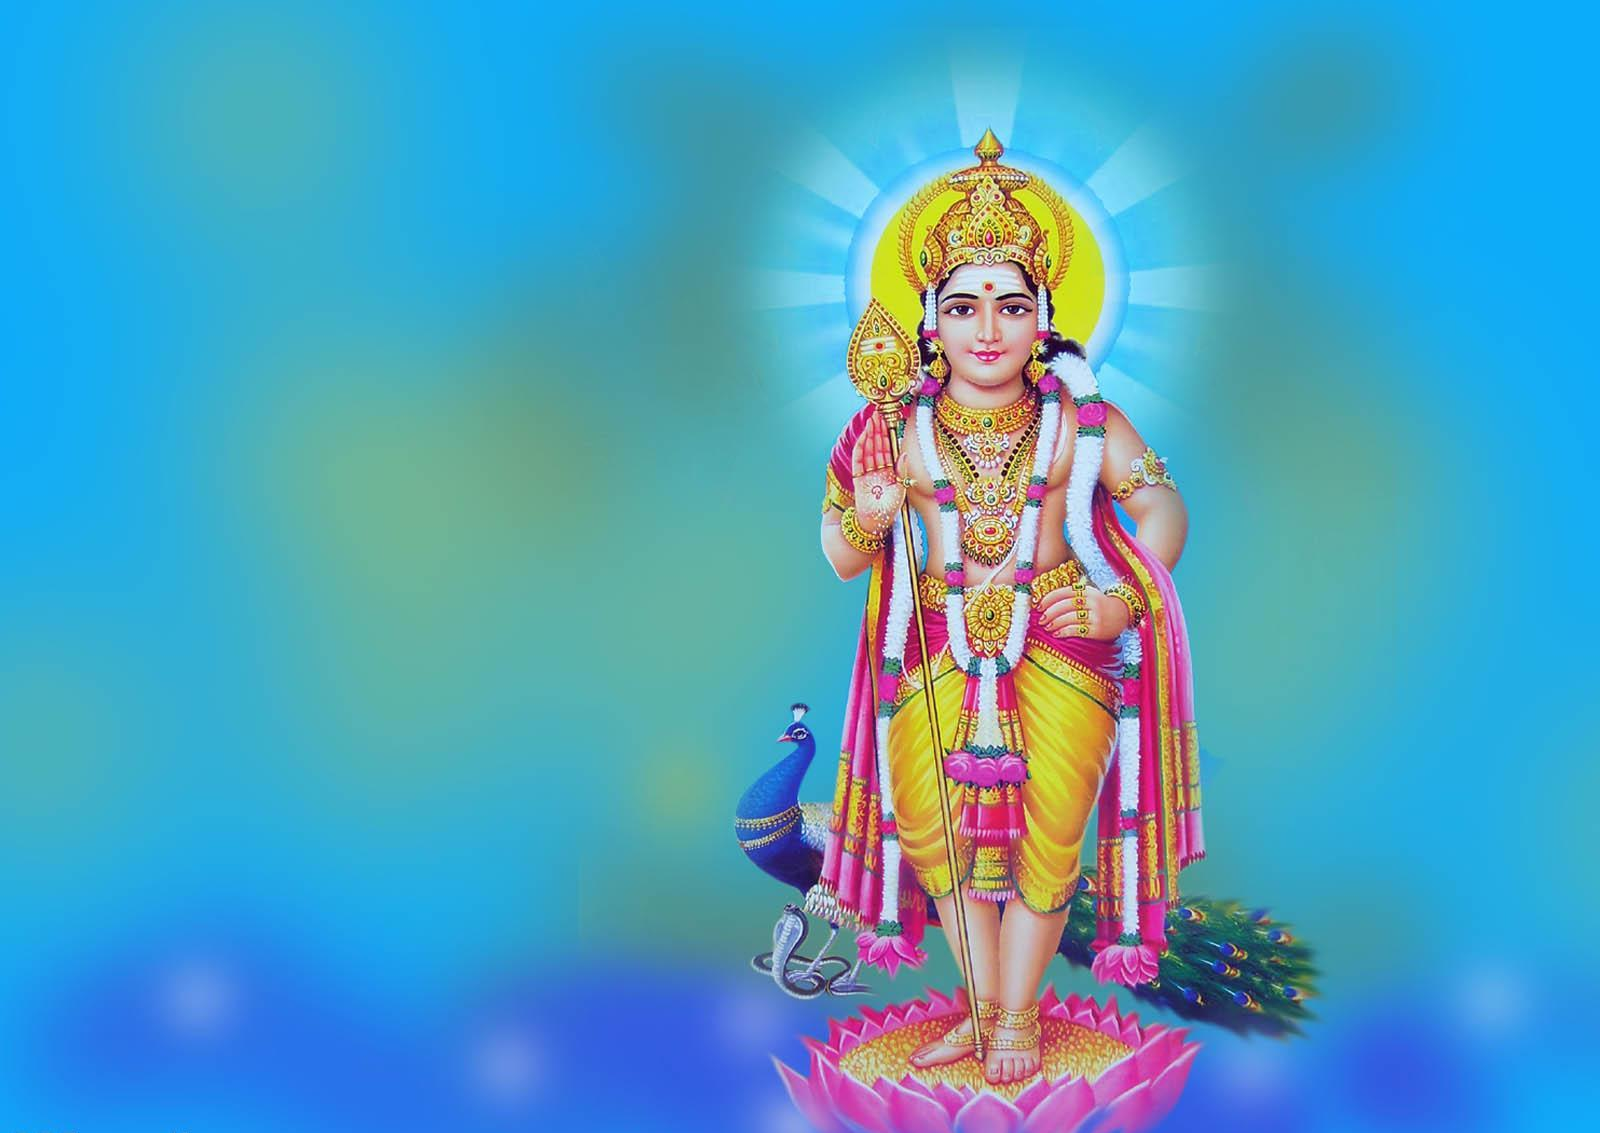 Lord murugan live wallpaper free download driveeapusedmotorhome free reference letter lord murugan baby wallpapers for desktop fresh lord kartikeya hd wallpaper p altavistaventures Image collections